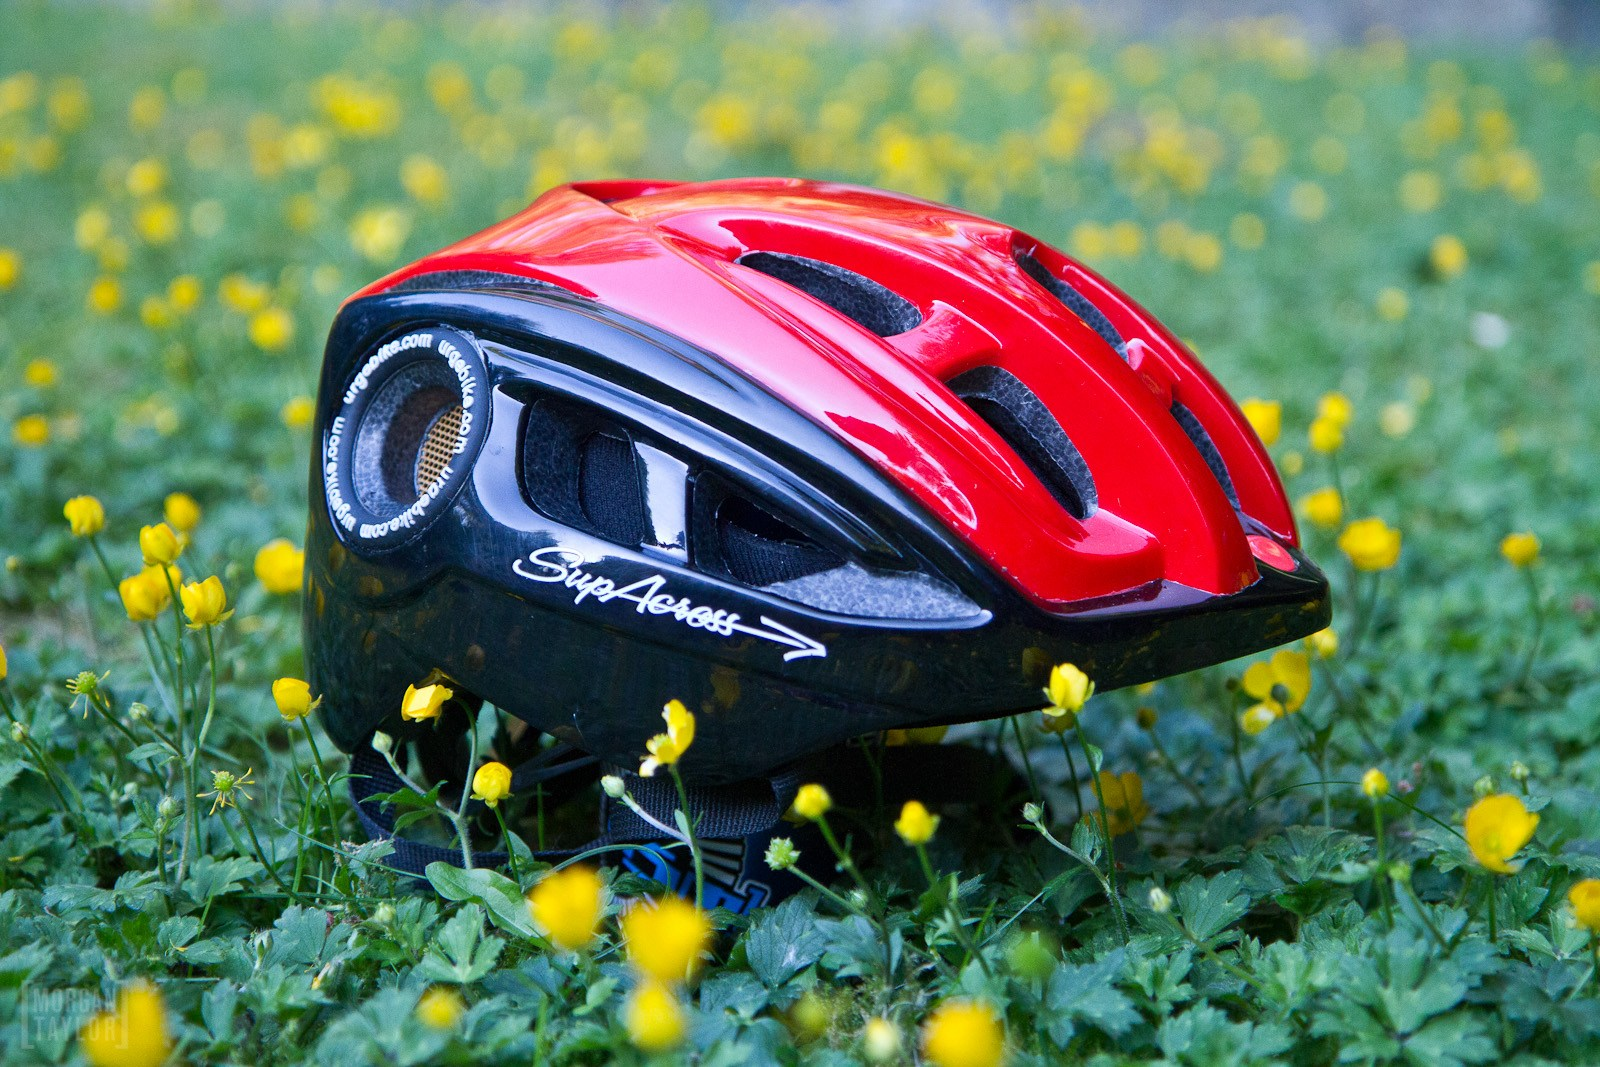 The SupAcross in profile: upholding the proud Urge Bike Products tradition of looking like subtle extraterrestrial raverboy headgear.